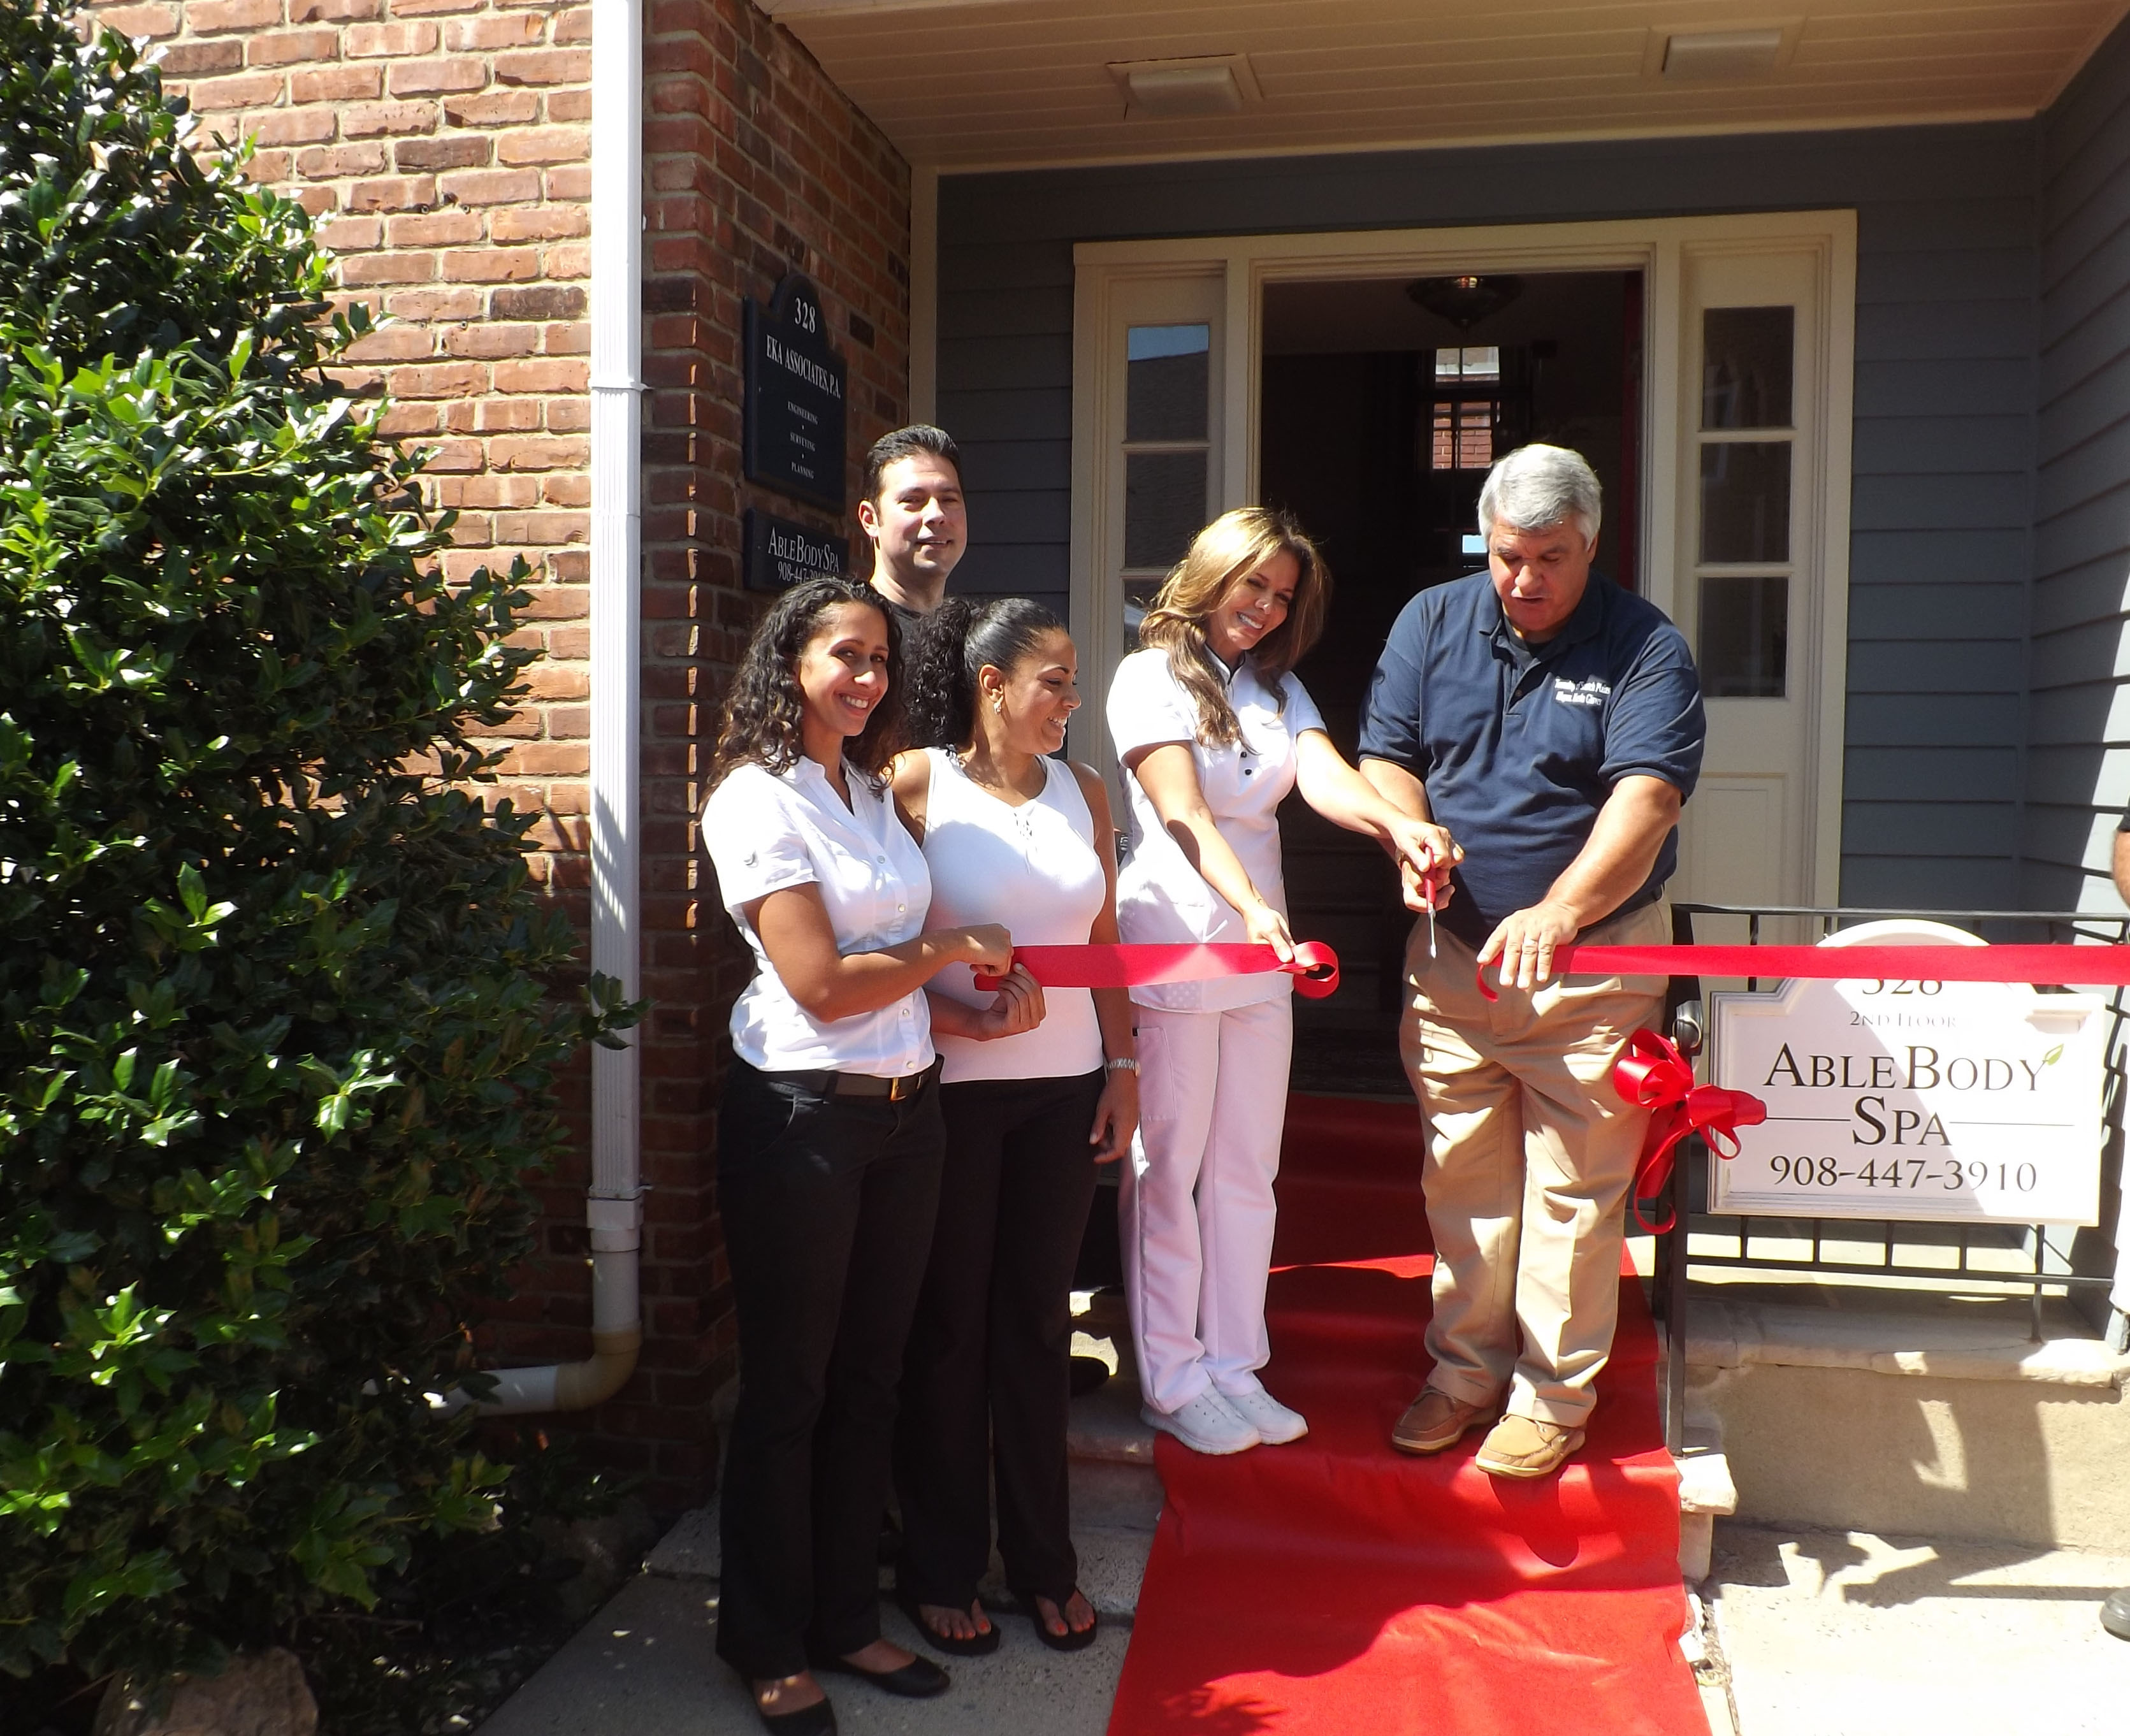 8978af36348d65a12d37_Able_spa_ribbon_cutting.jpg